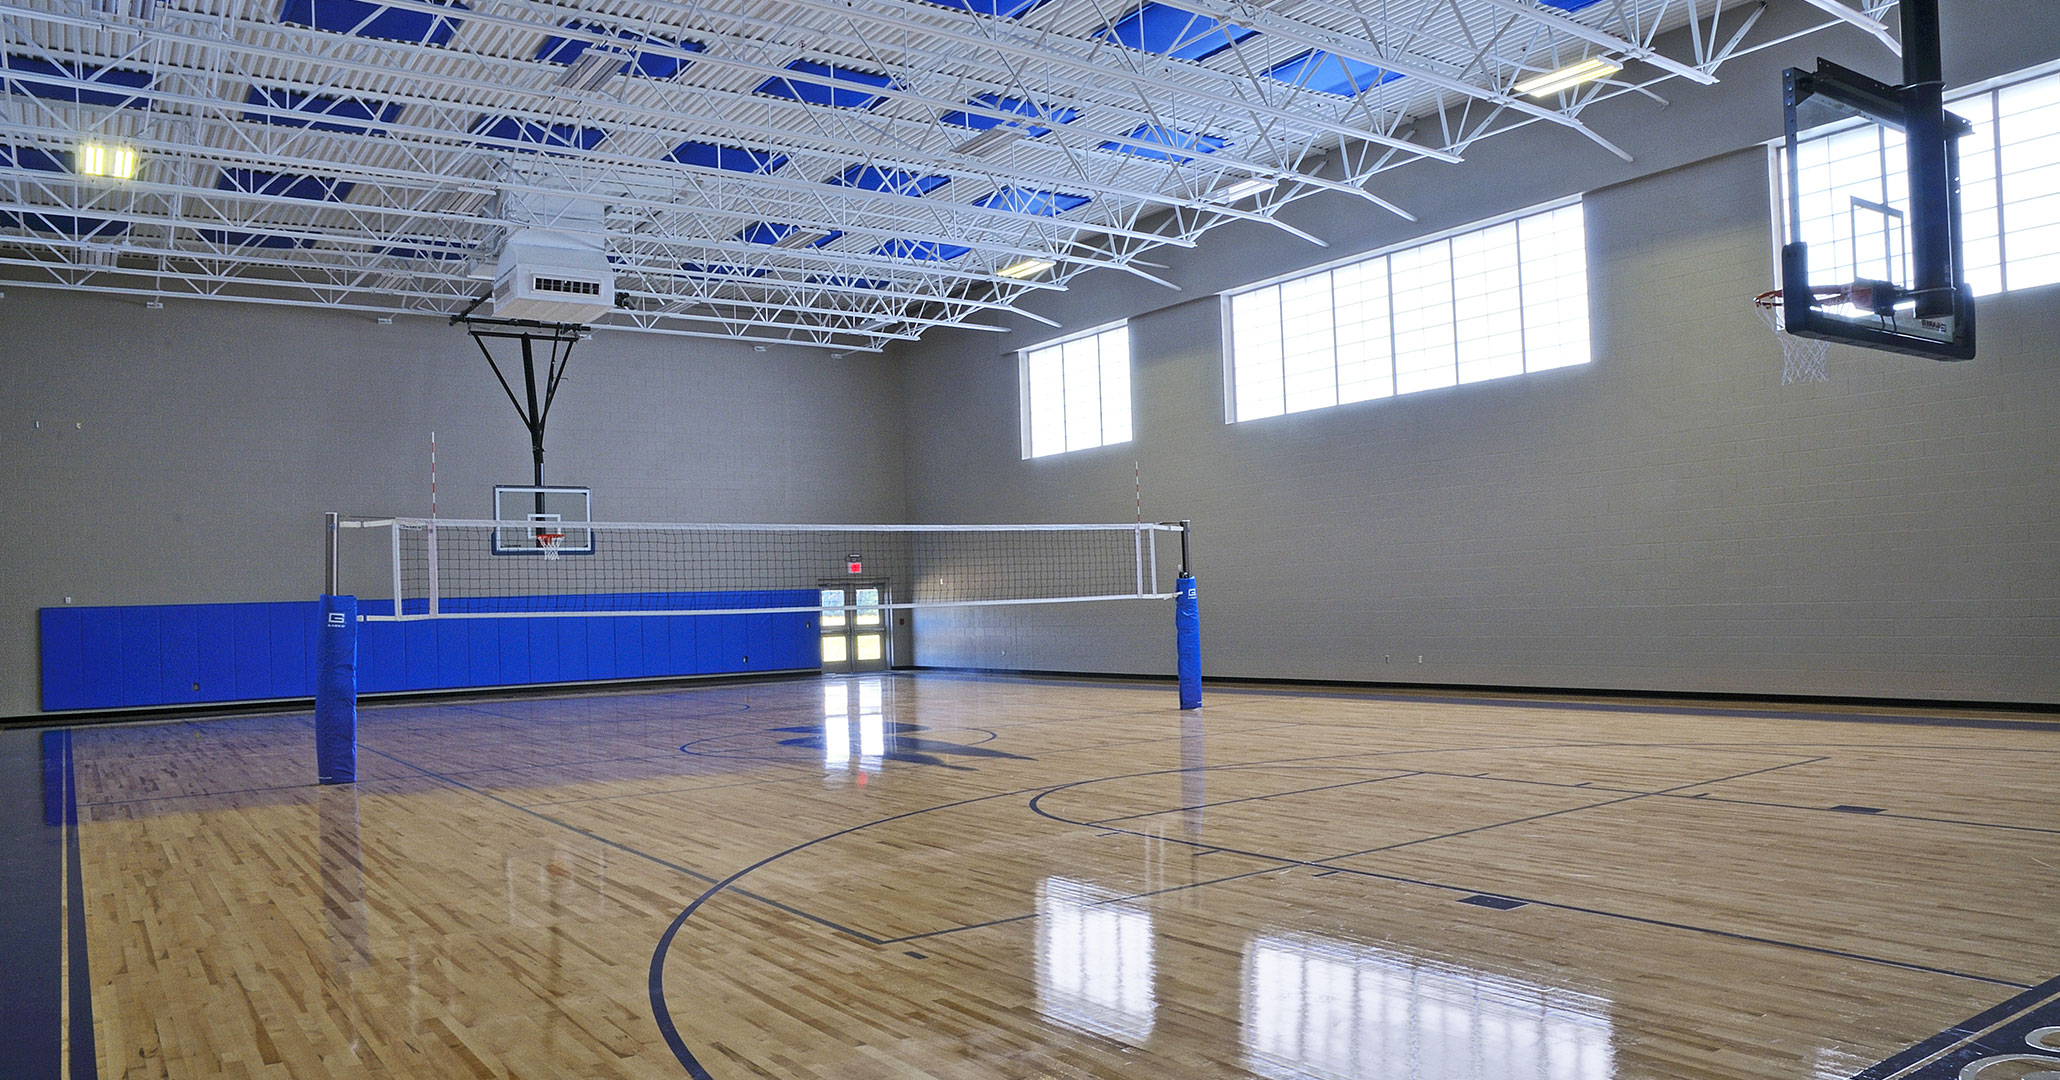 The Charlotte Diocese and Christ the King Catholic High School worked with Boudreaux master planners and architects to design the school's gymnasium.